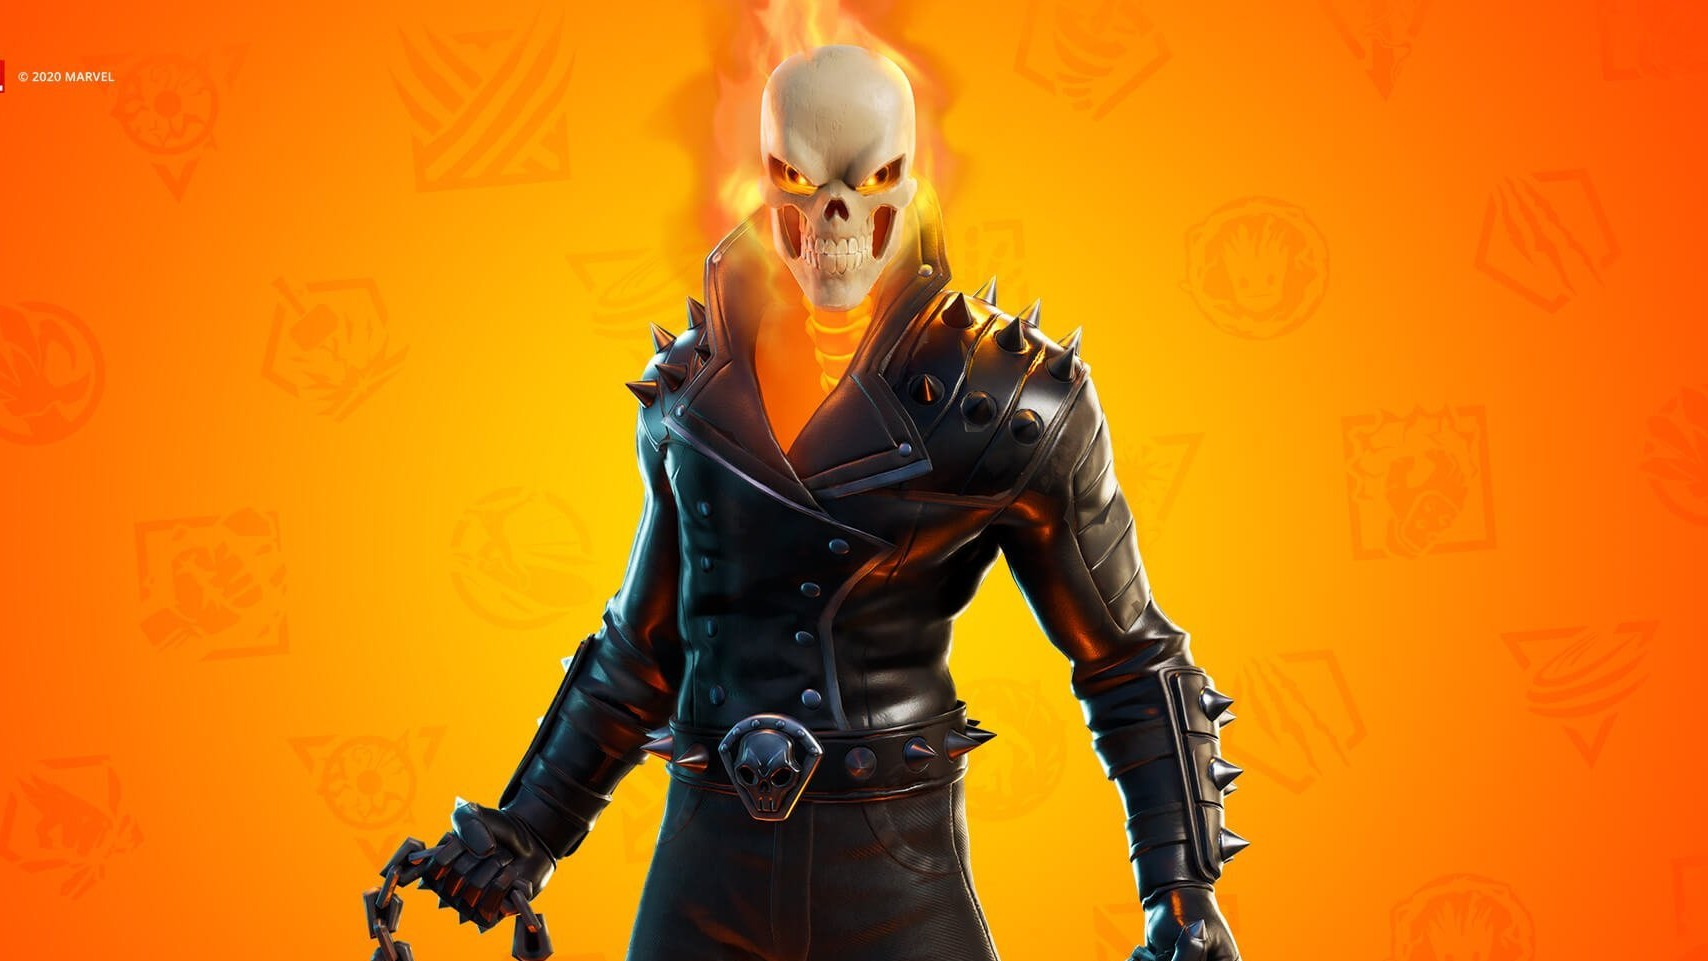 Best Fortnite Skin To Win Ghost Rider Cup How To Get The Ghost Rider Fortnite Skin Pc Gamer